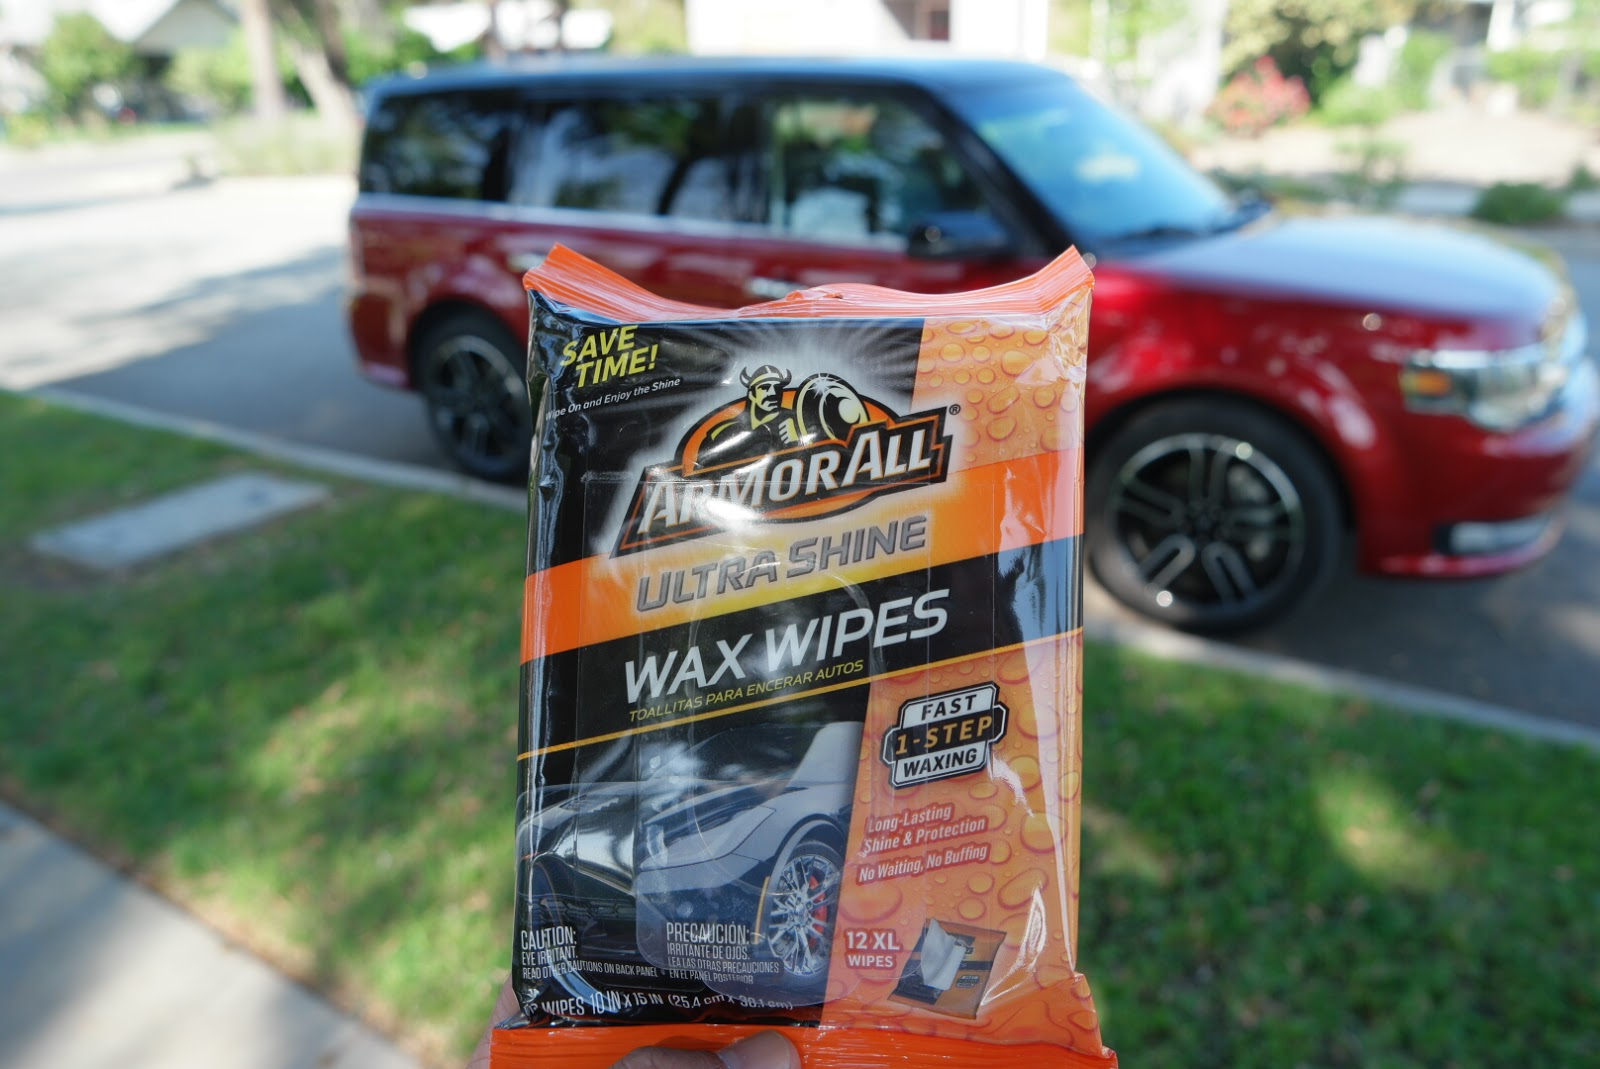 armor all ultra shine wax wipes which again are so easy to use these pre waxed wipes bring out the shine in my car so effortlessly with no buffing or